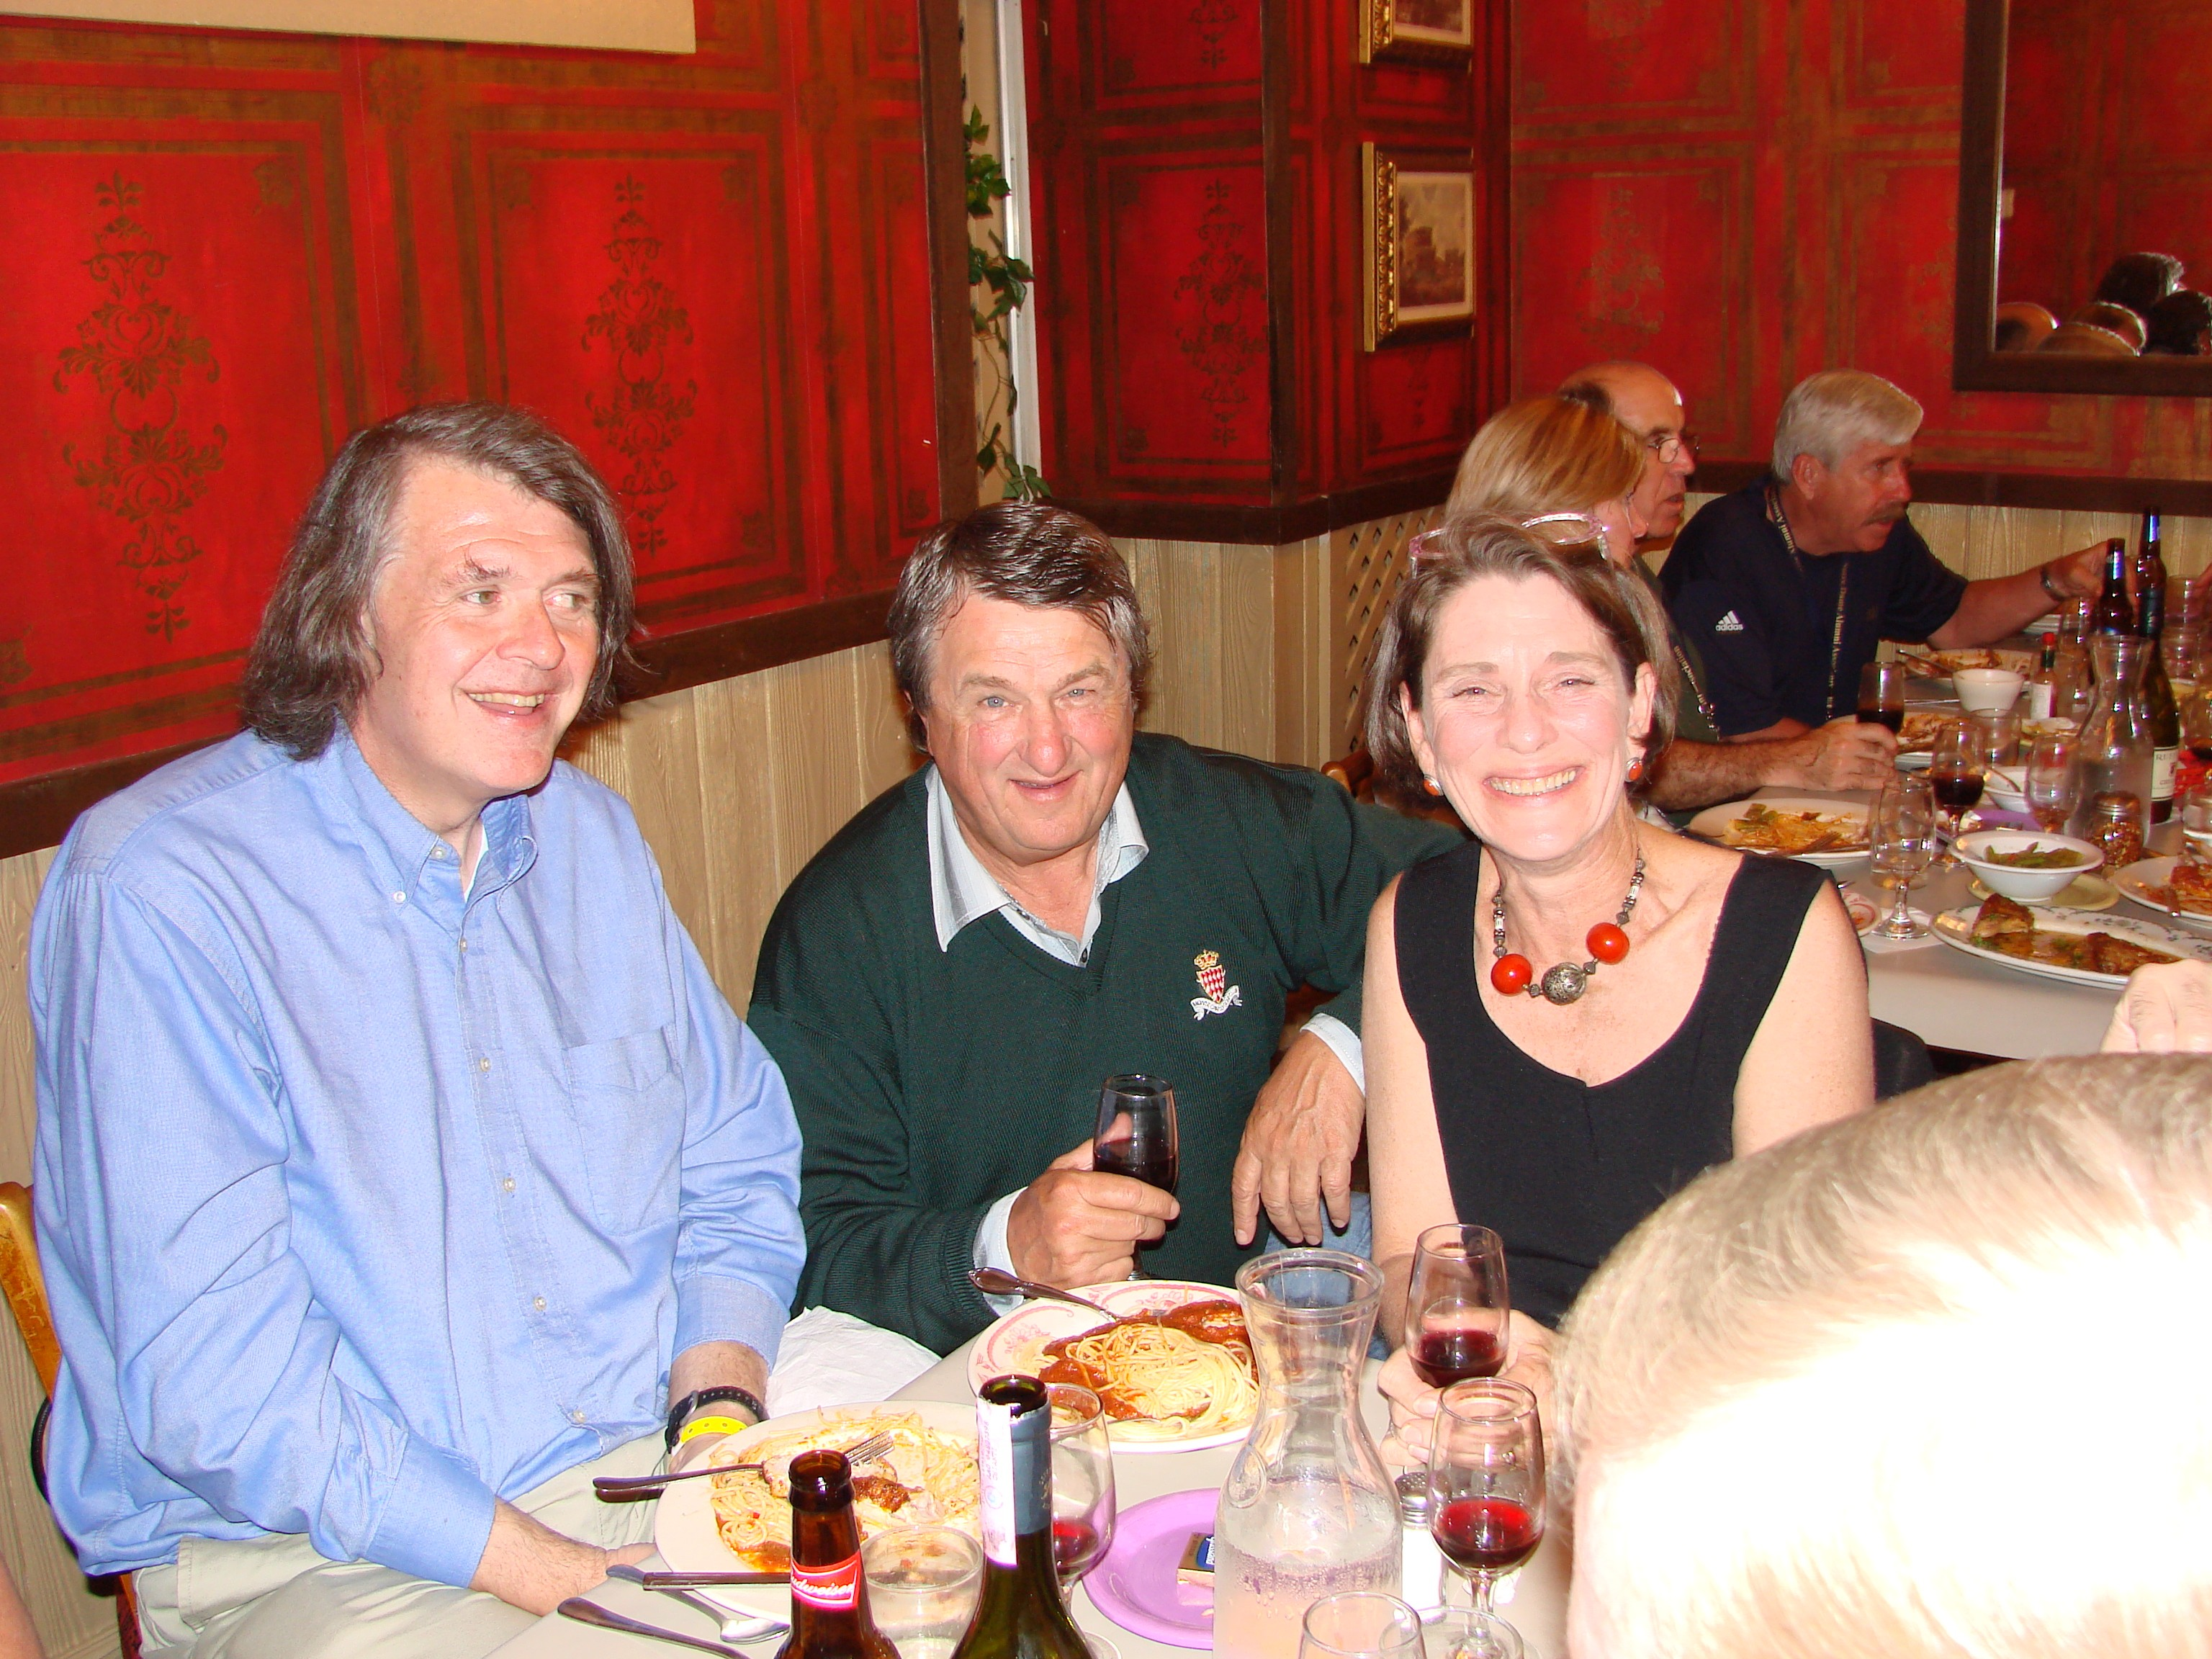 Dennis Gallagher, Mike Browning, Elise Reeder at Sunny Italy